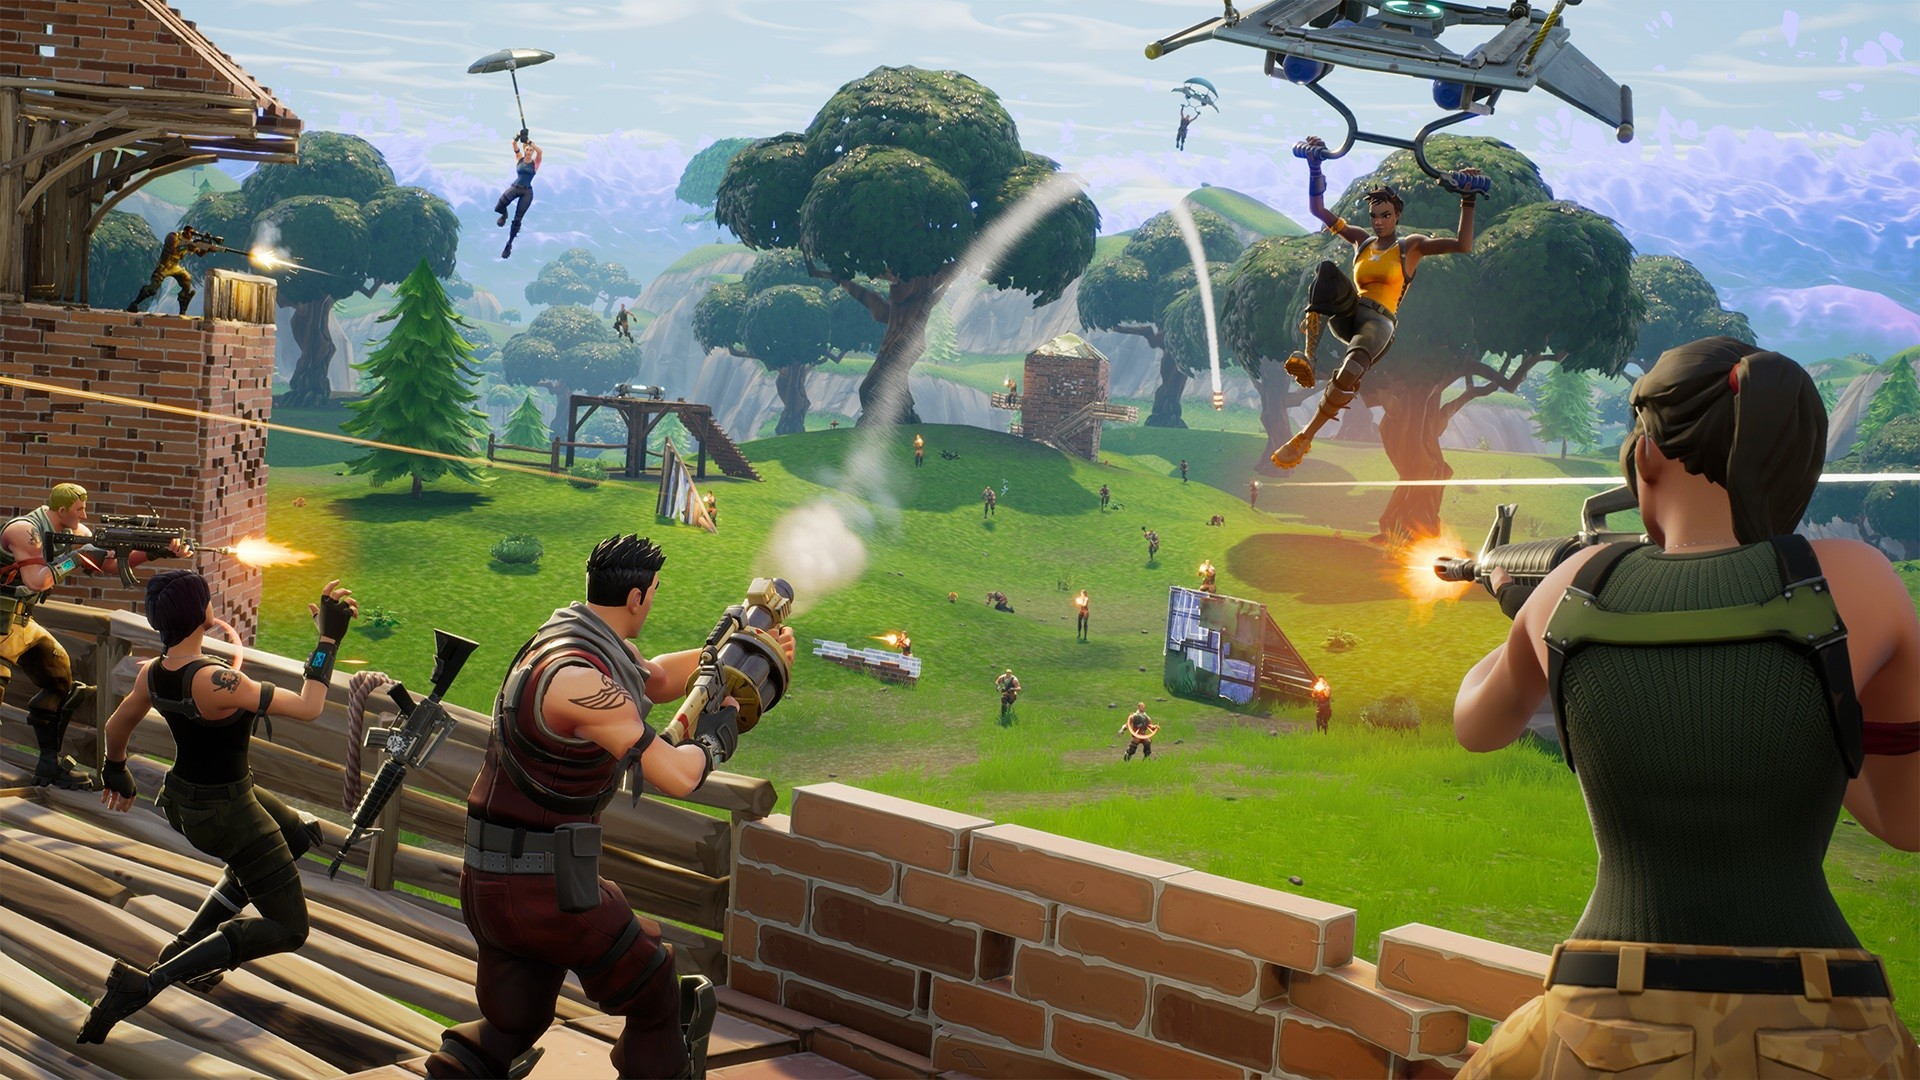 fortnite battle royale incoming to ios and android supports pc and ps4 cross play neowin - fortnite play android